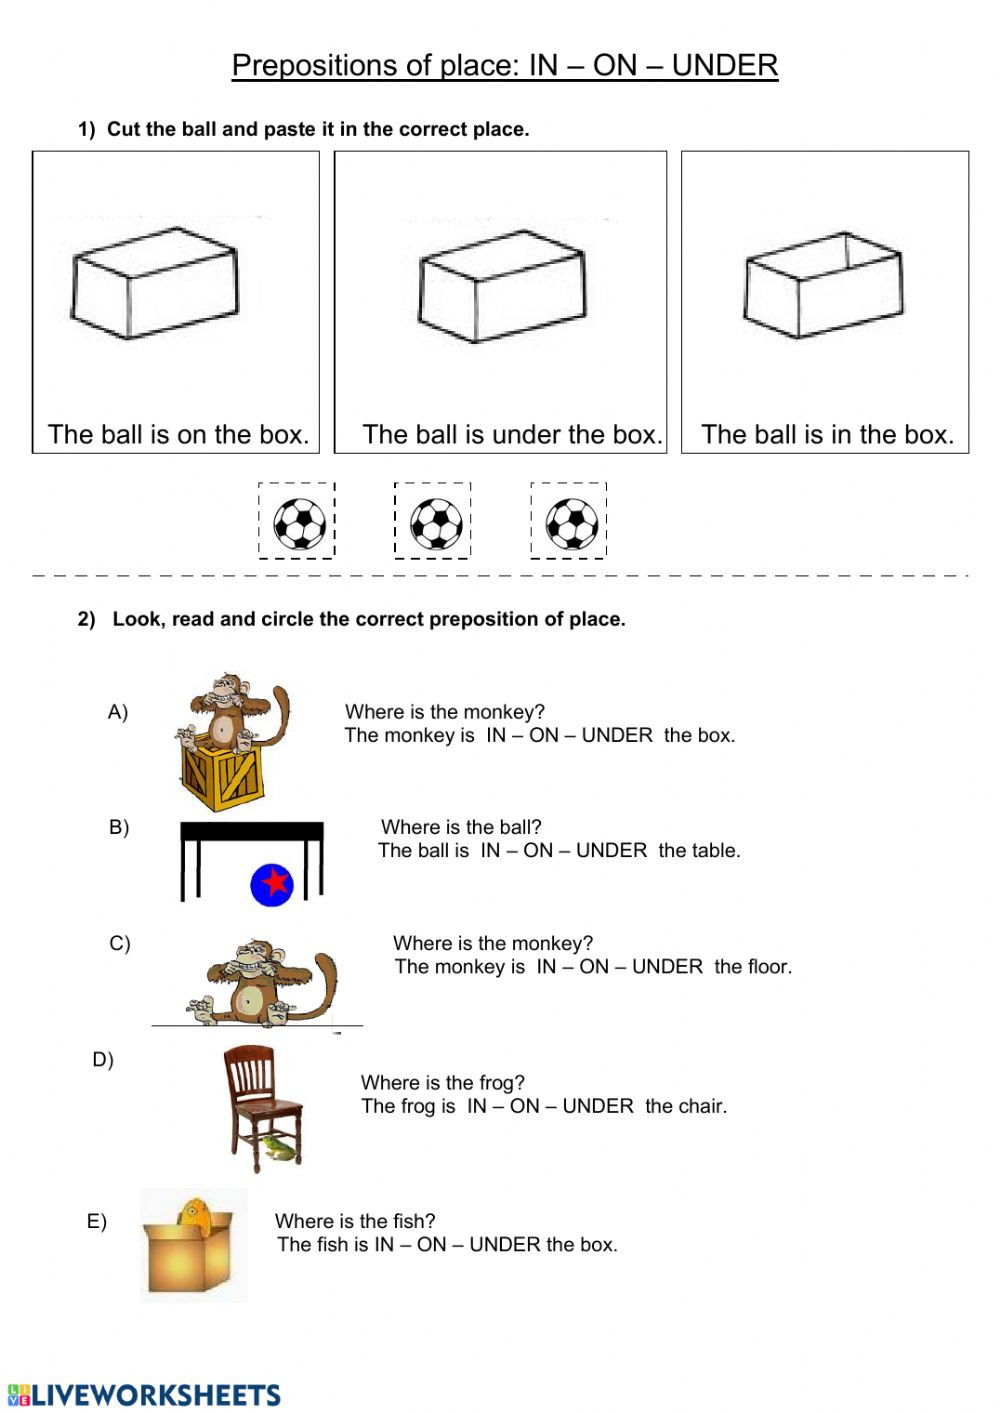 Preposition Worksheets for Grade 1 In On Under Interactive Worksheet